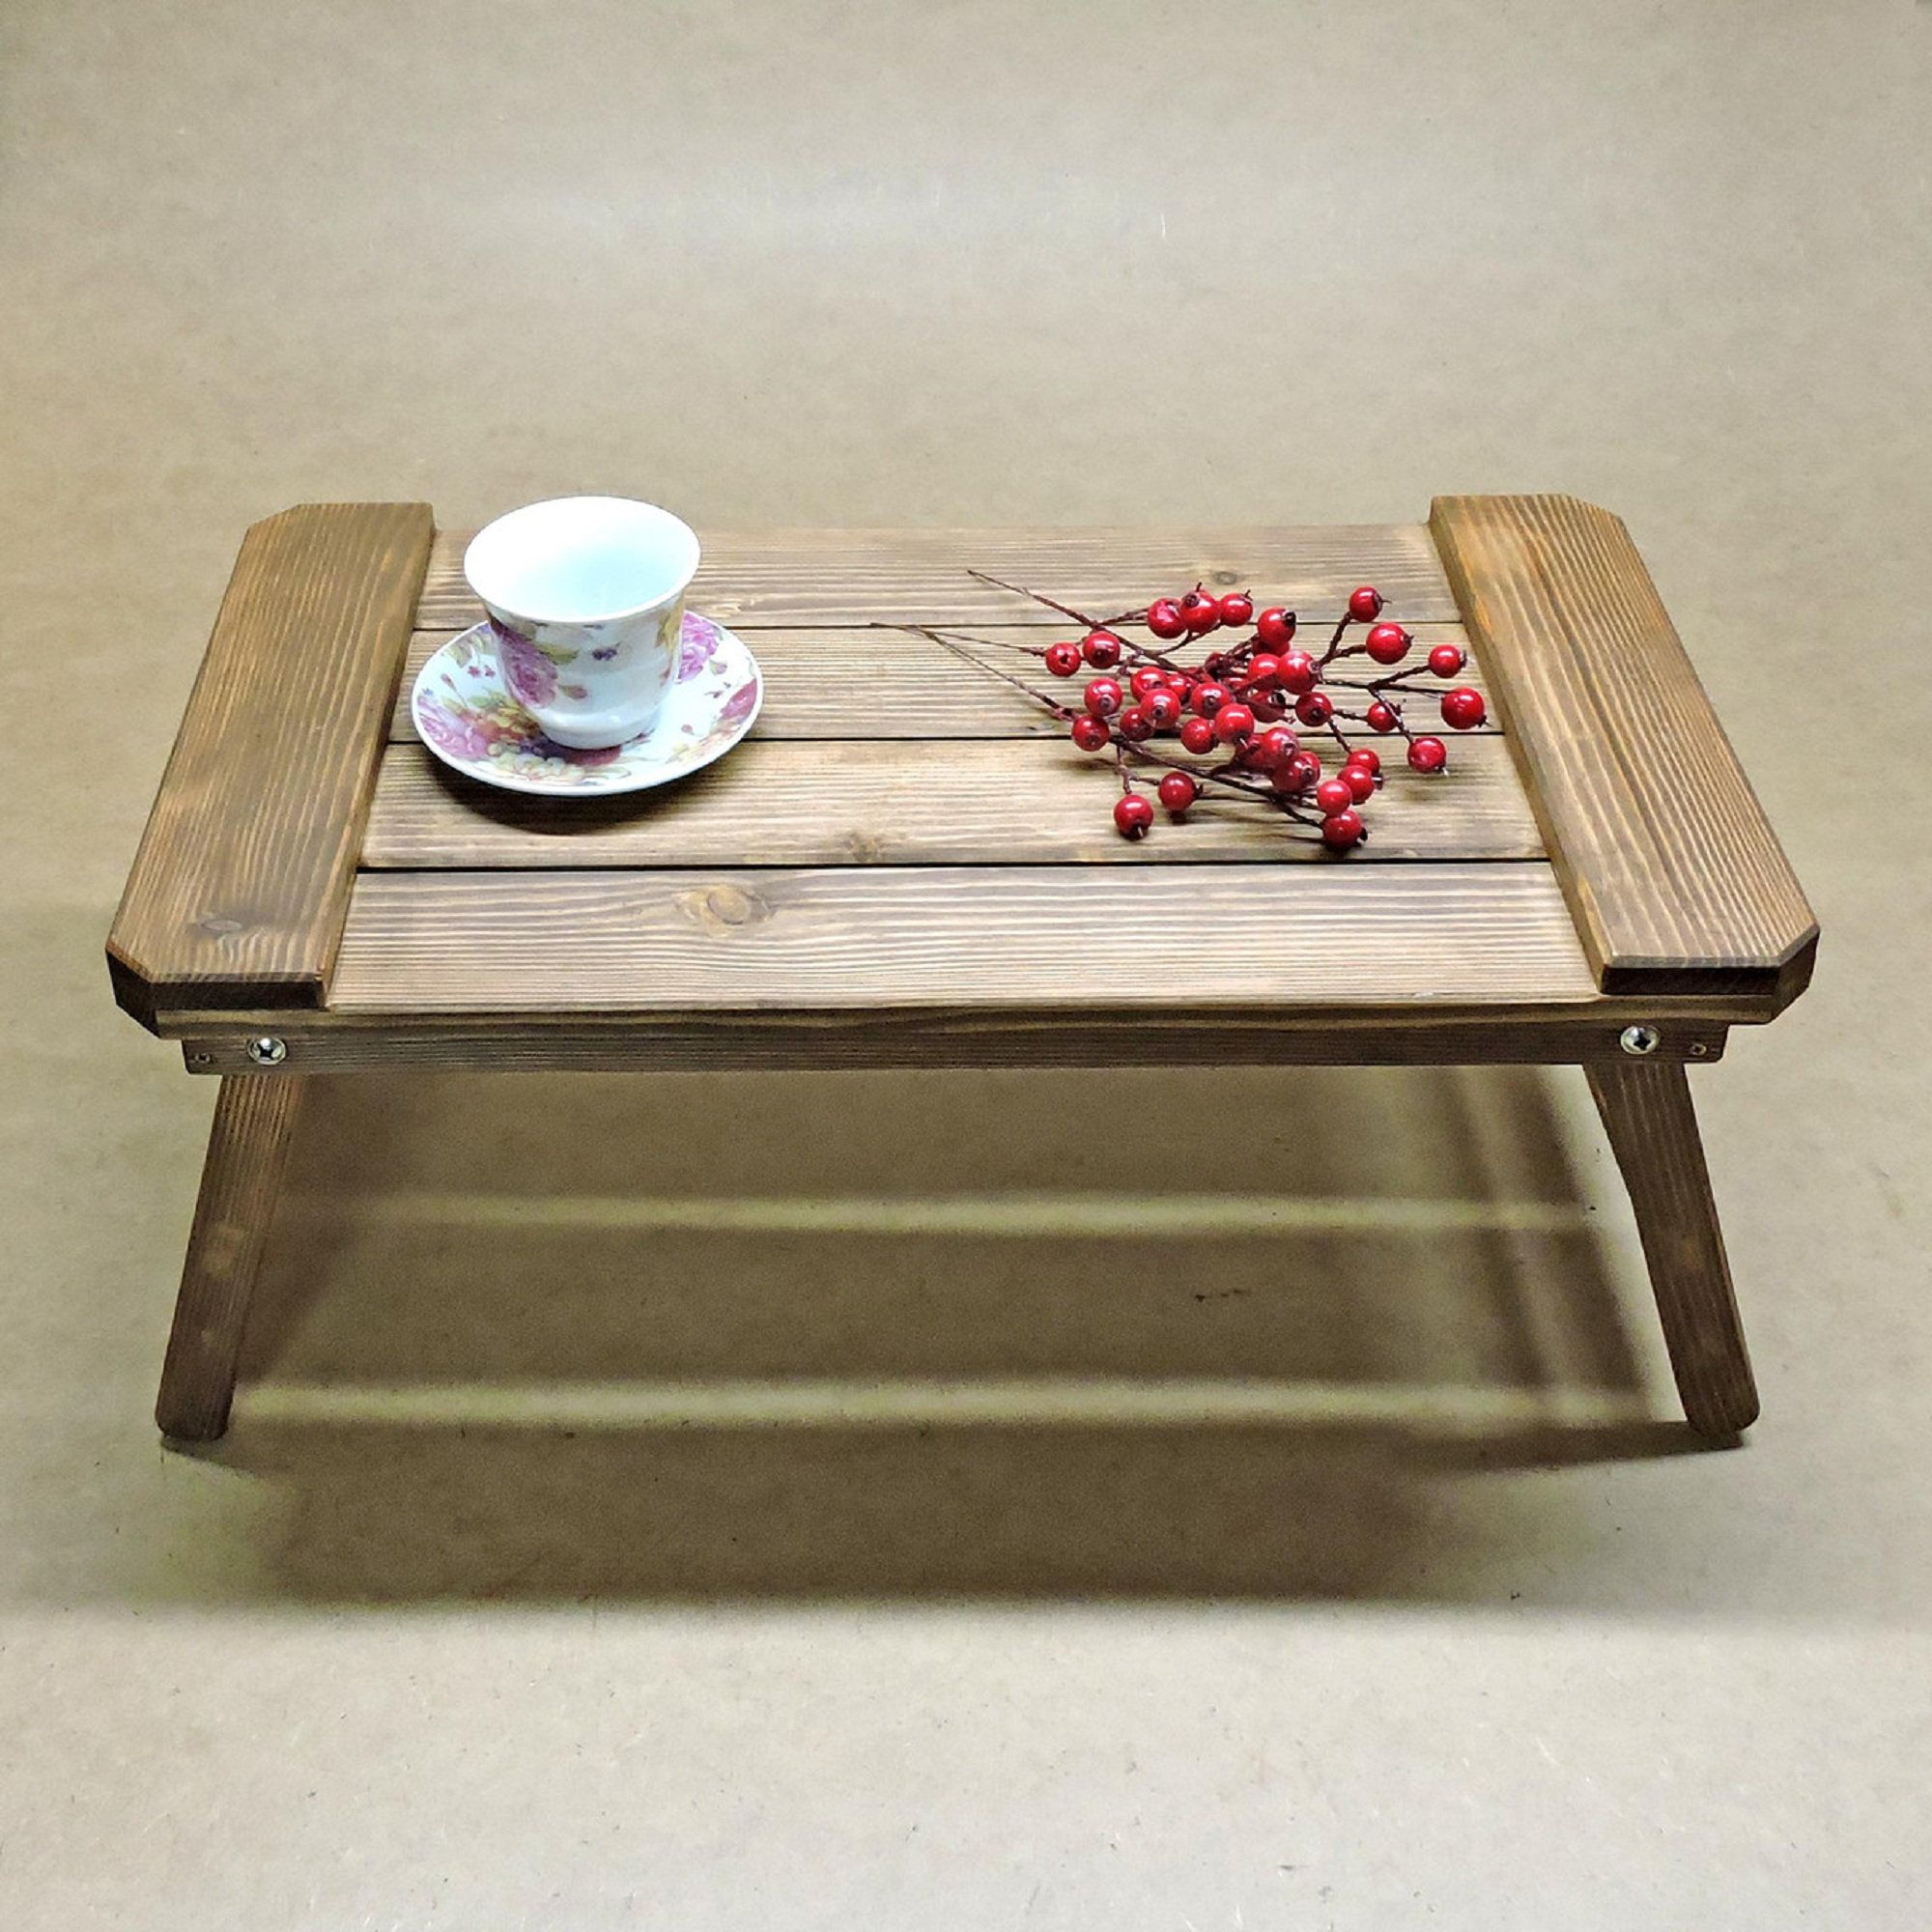 Wood Serving Tray Wooden Tray Rustic Wood Tray Food Tray Breakfast Tray Ottoman Coffee Table Bed Tray Bed Stand Folding Tray Ottoman Coffee Table Coffee Table Serving Tray Wood